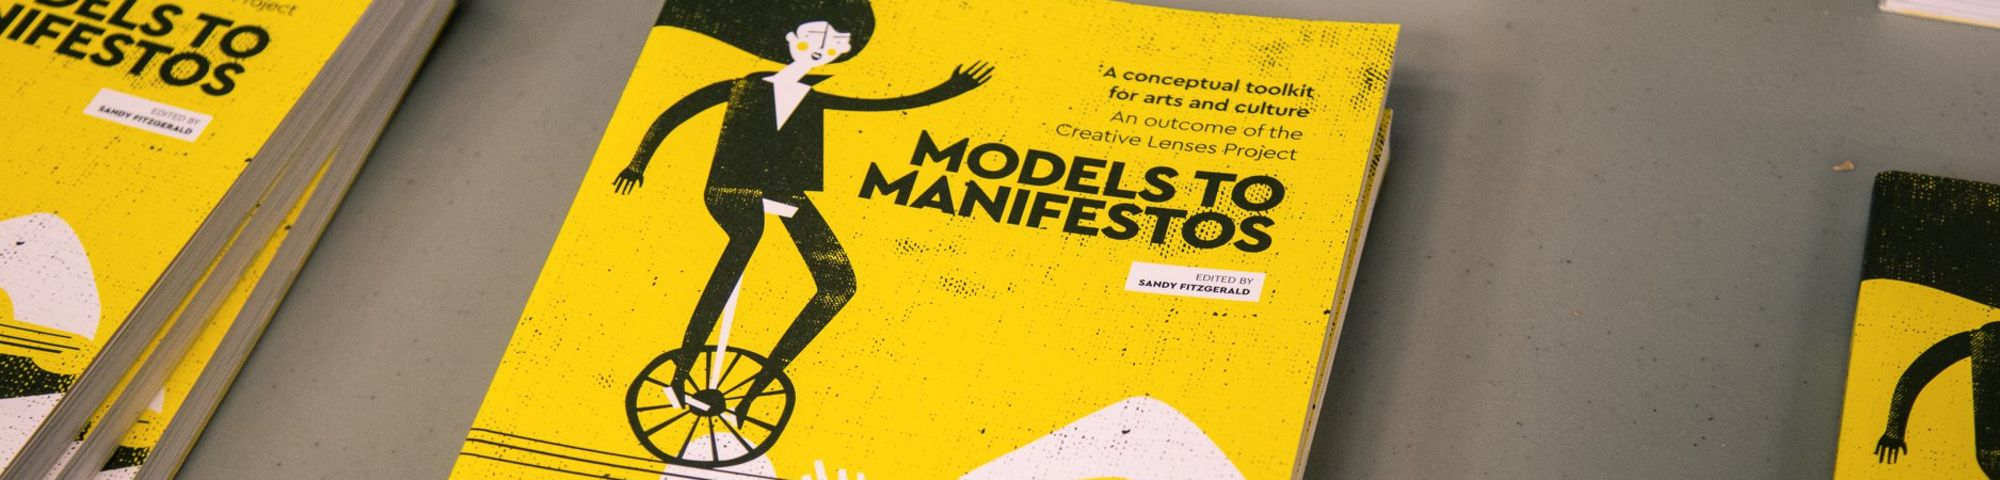 Image of textbook with text: Models for Manifestos